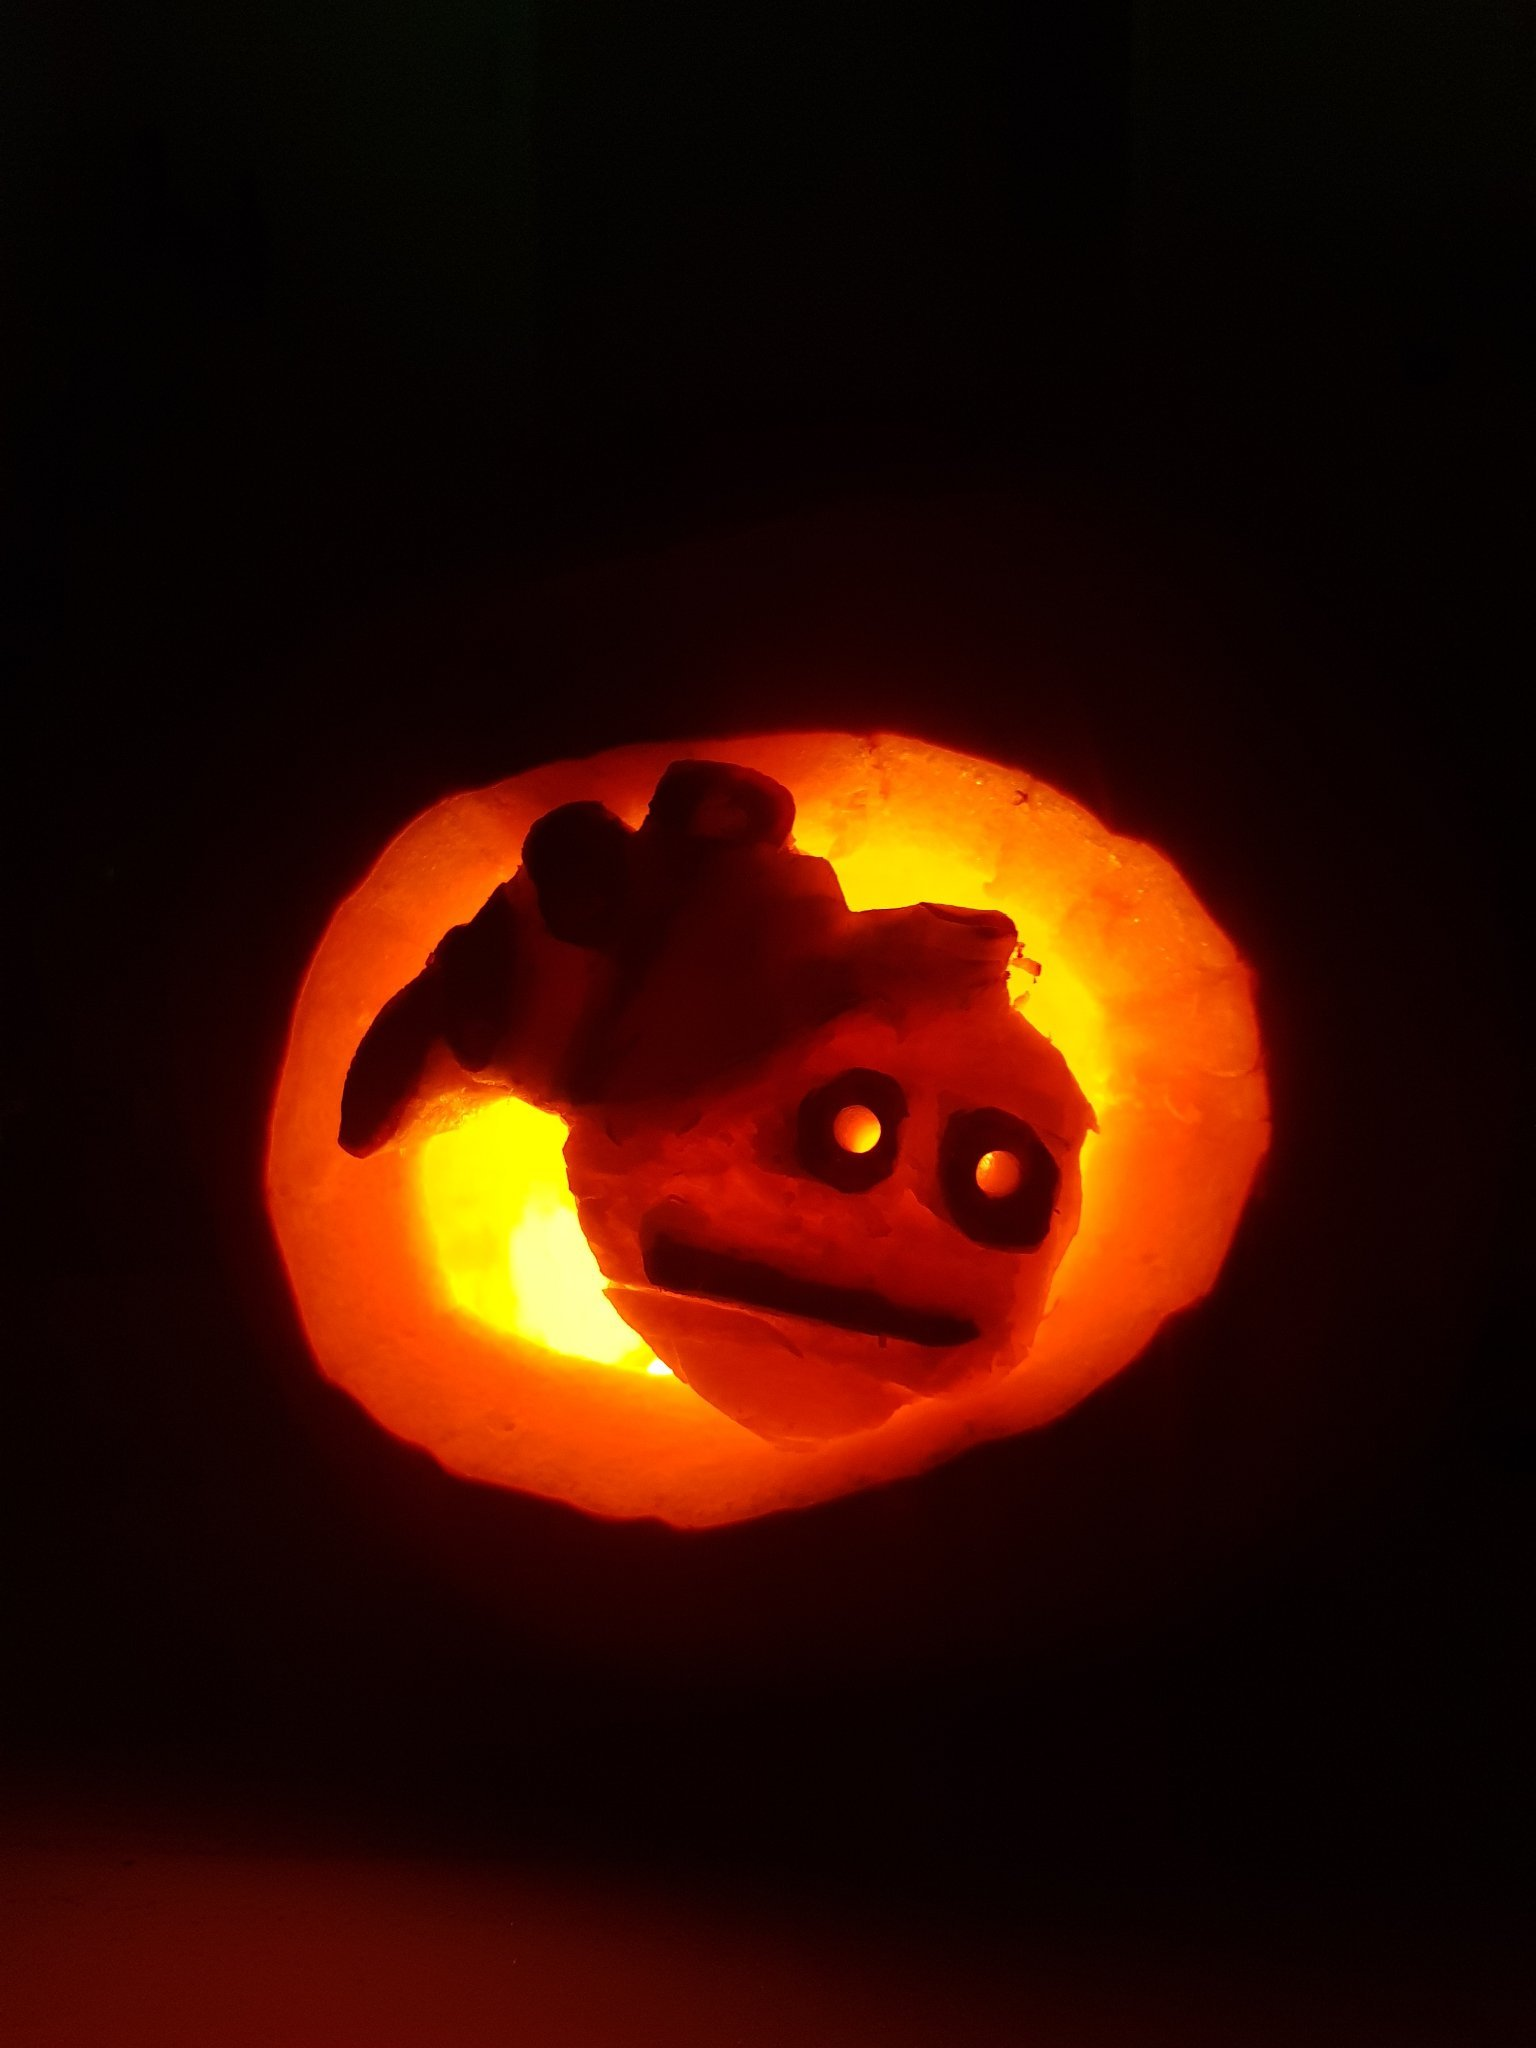 Spooky vibe check pumpkin carving i did happy spooky day - meme